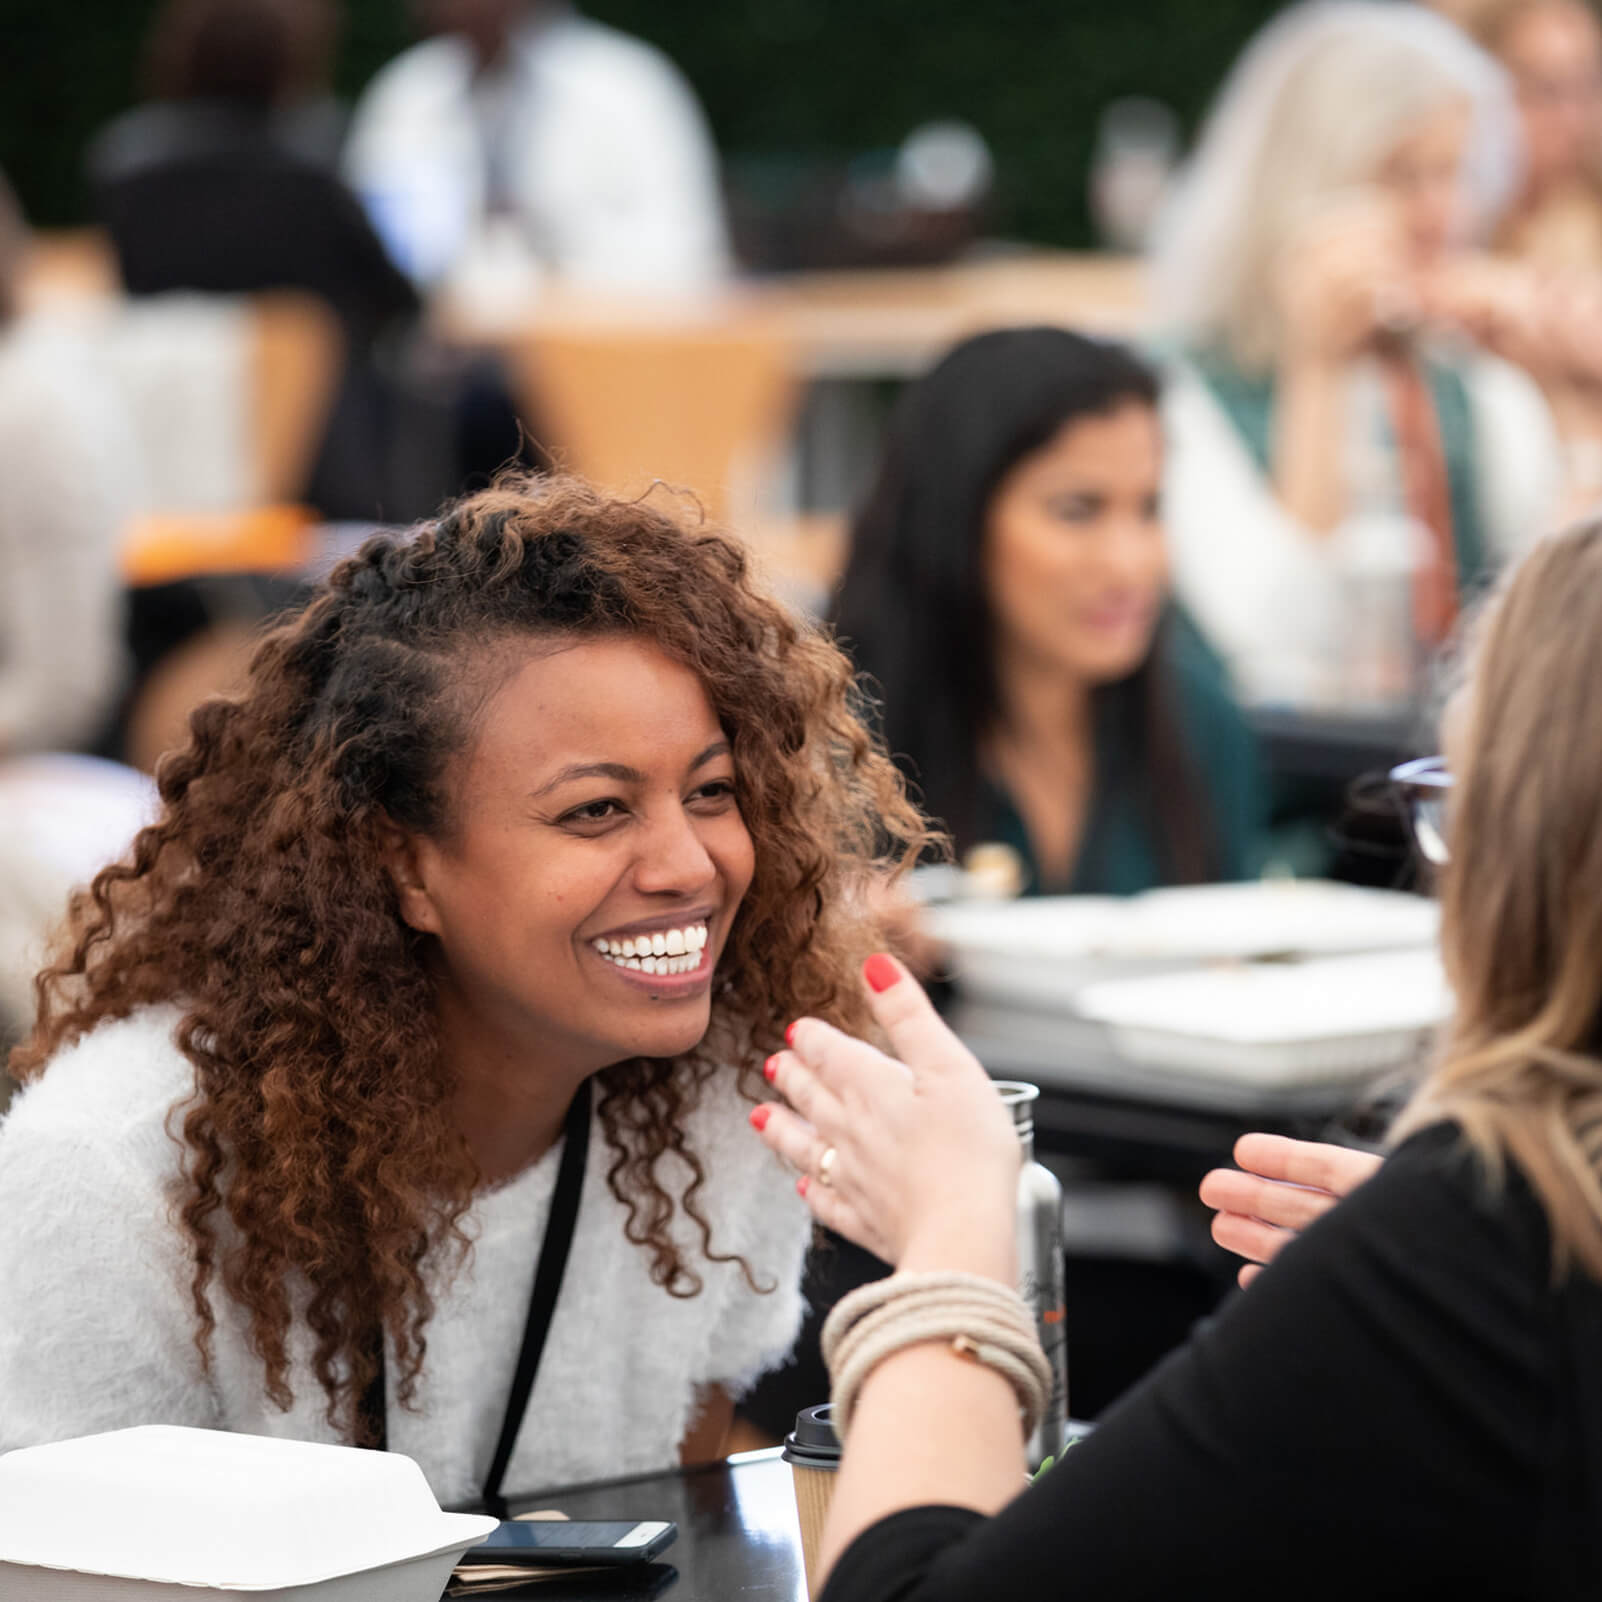 Skoll World Forum 2018 - Young Woman Networking